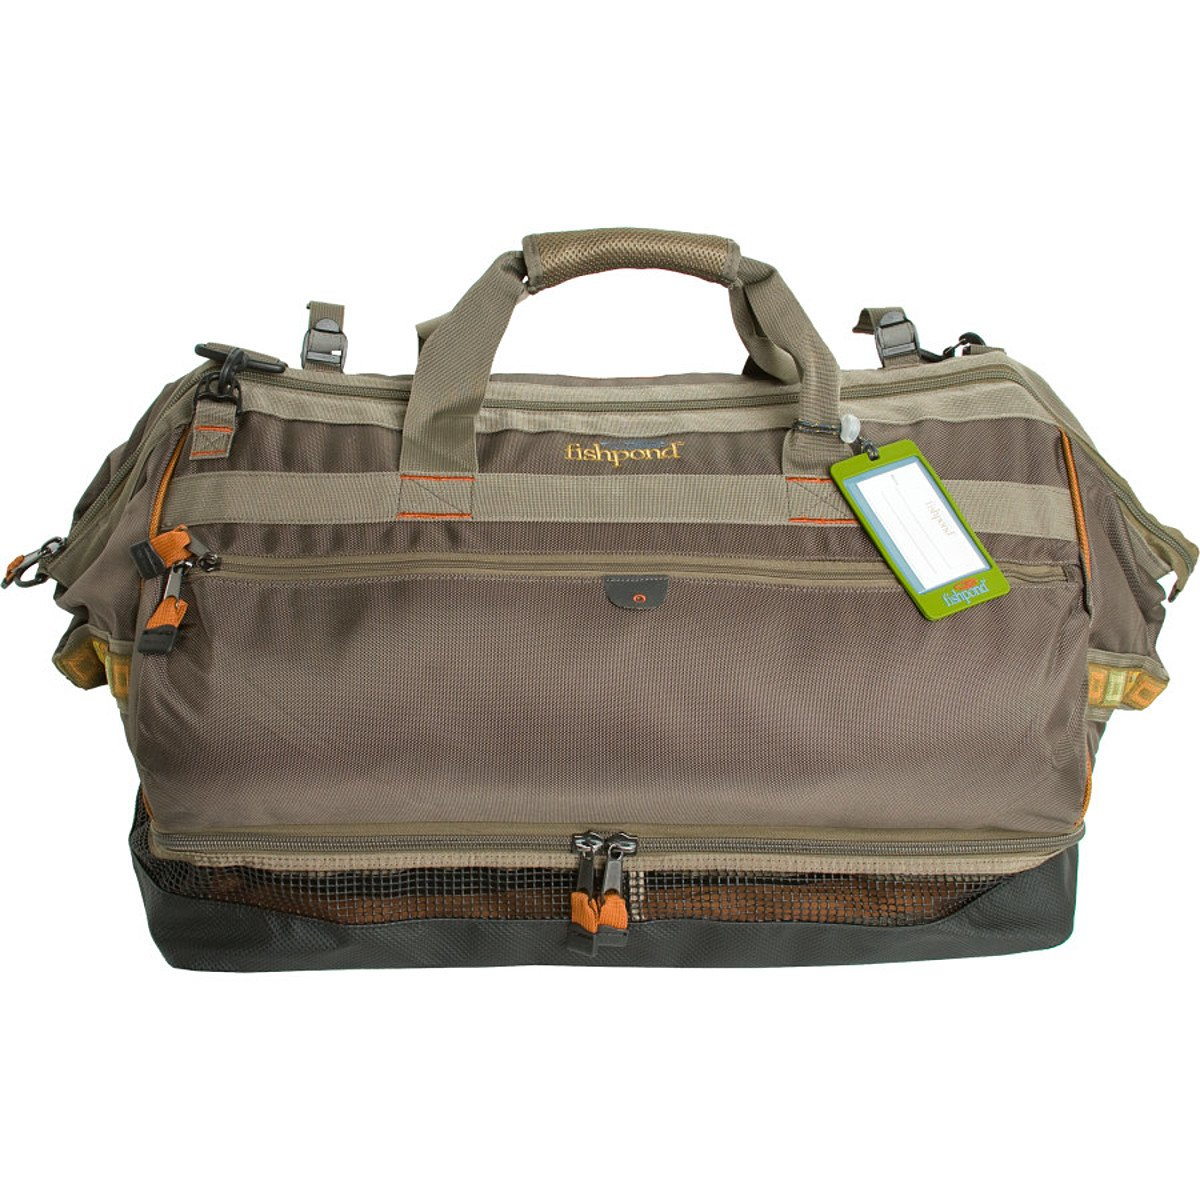 Fishpond Cimarron 24.5 Wader/Duffel Bag and Backpack Stone by FishPond   B004CUD0Z6